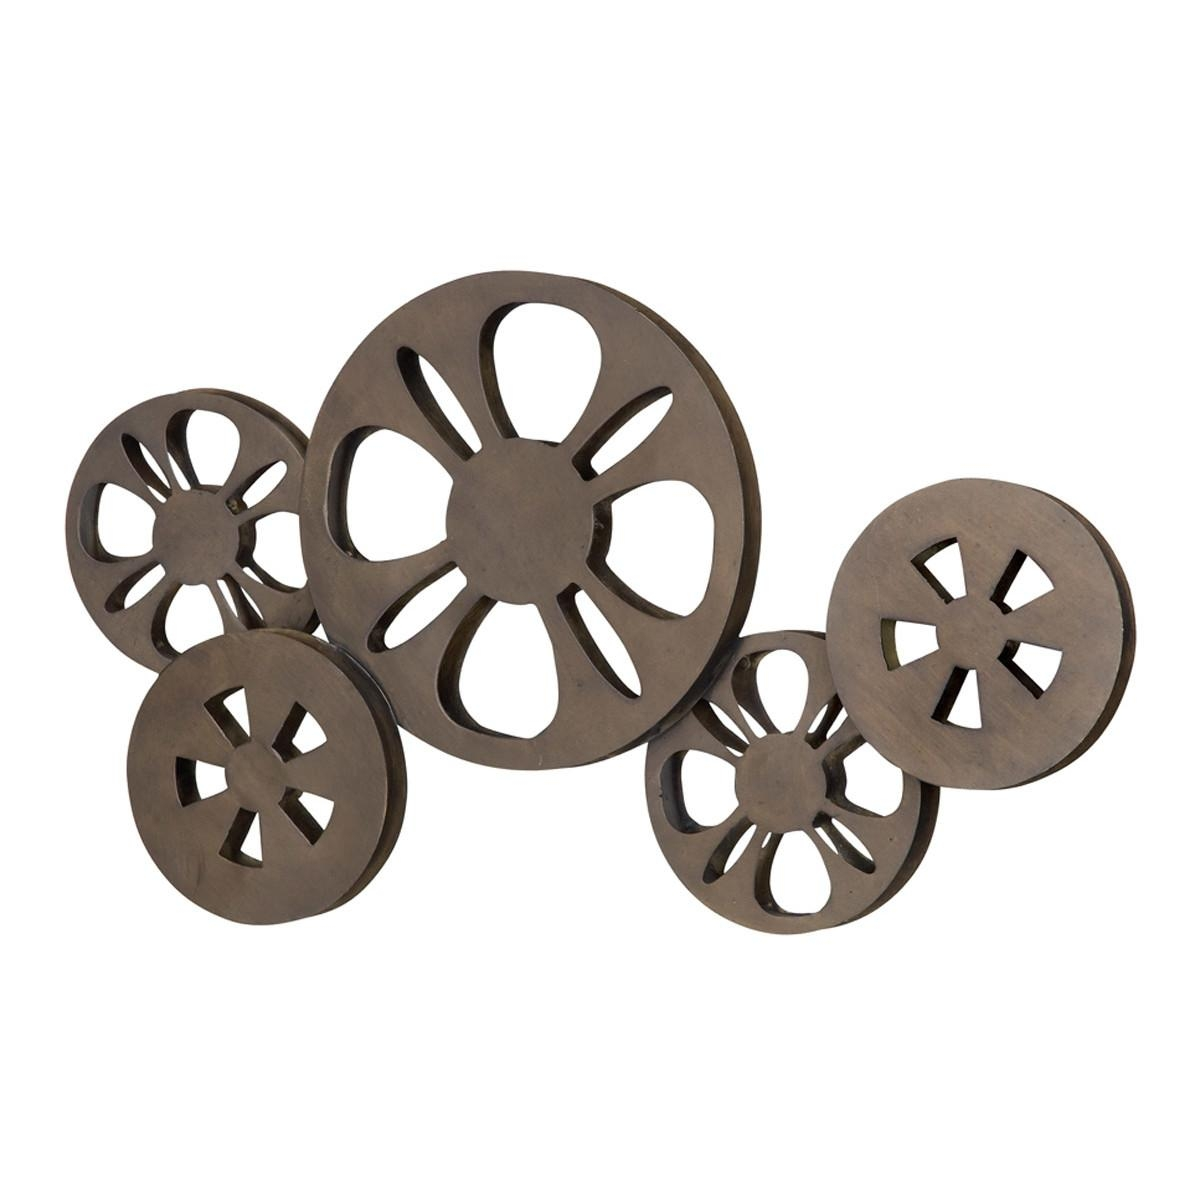 Images Of Movie Reel Wall Decor : Movie Reel Wall Decor Ideas Inside Movie Reel Wall Art (Image 11 of 20)